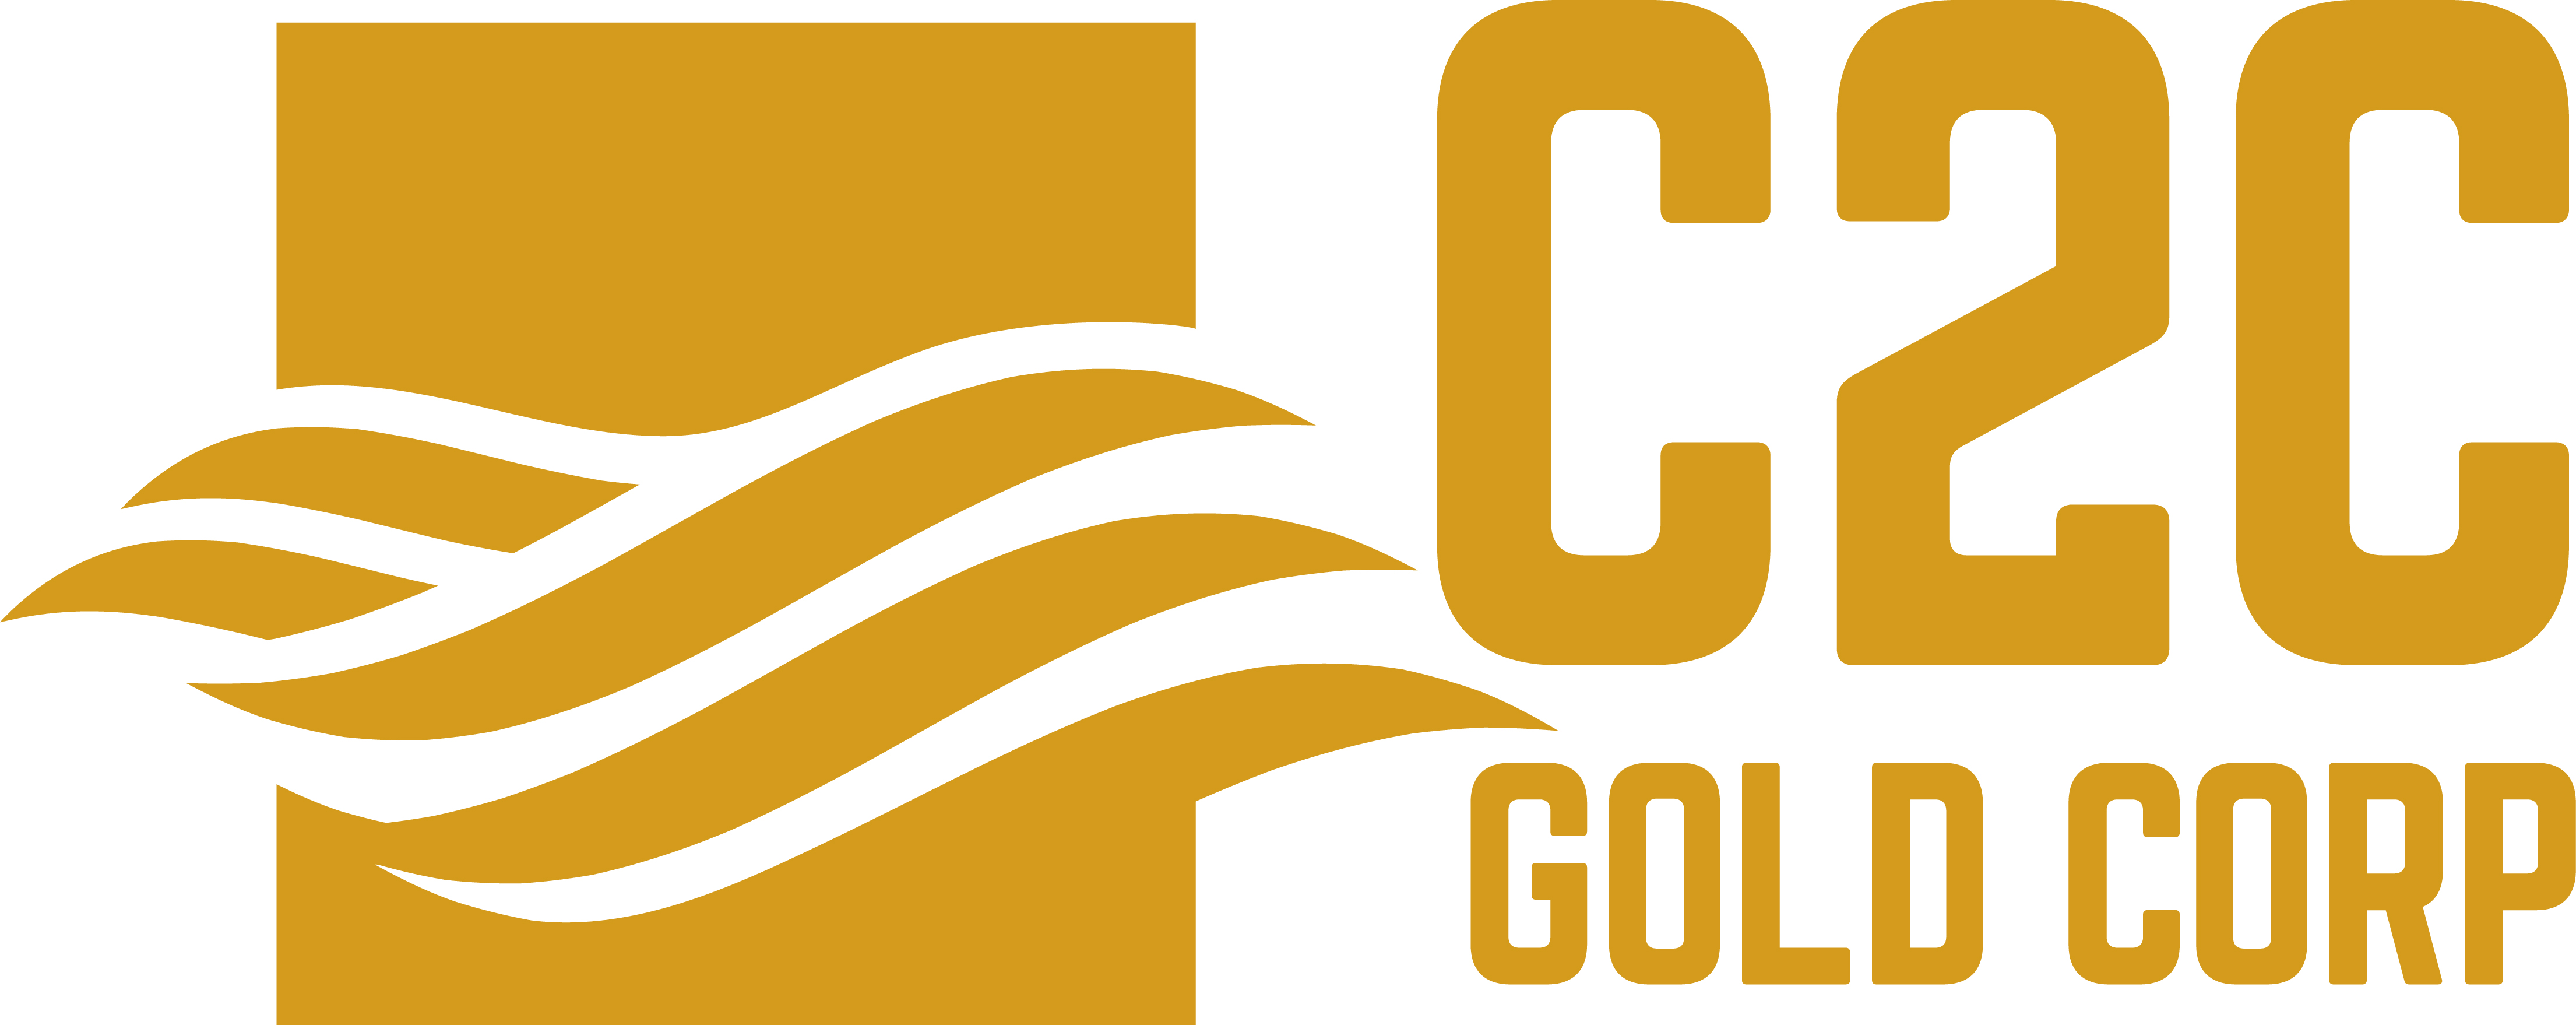 C2C Gold Expands Newfoundland Property Holdings to Cover 100 km Along Trend